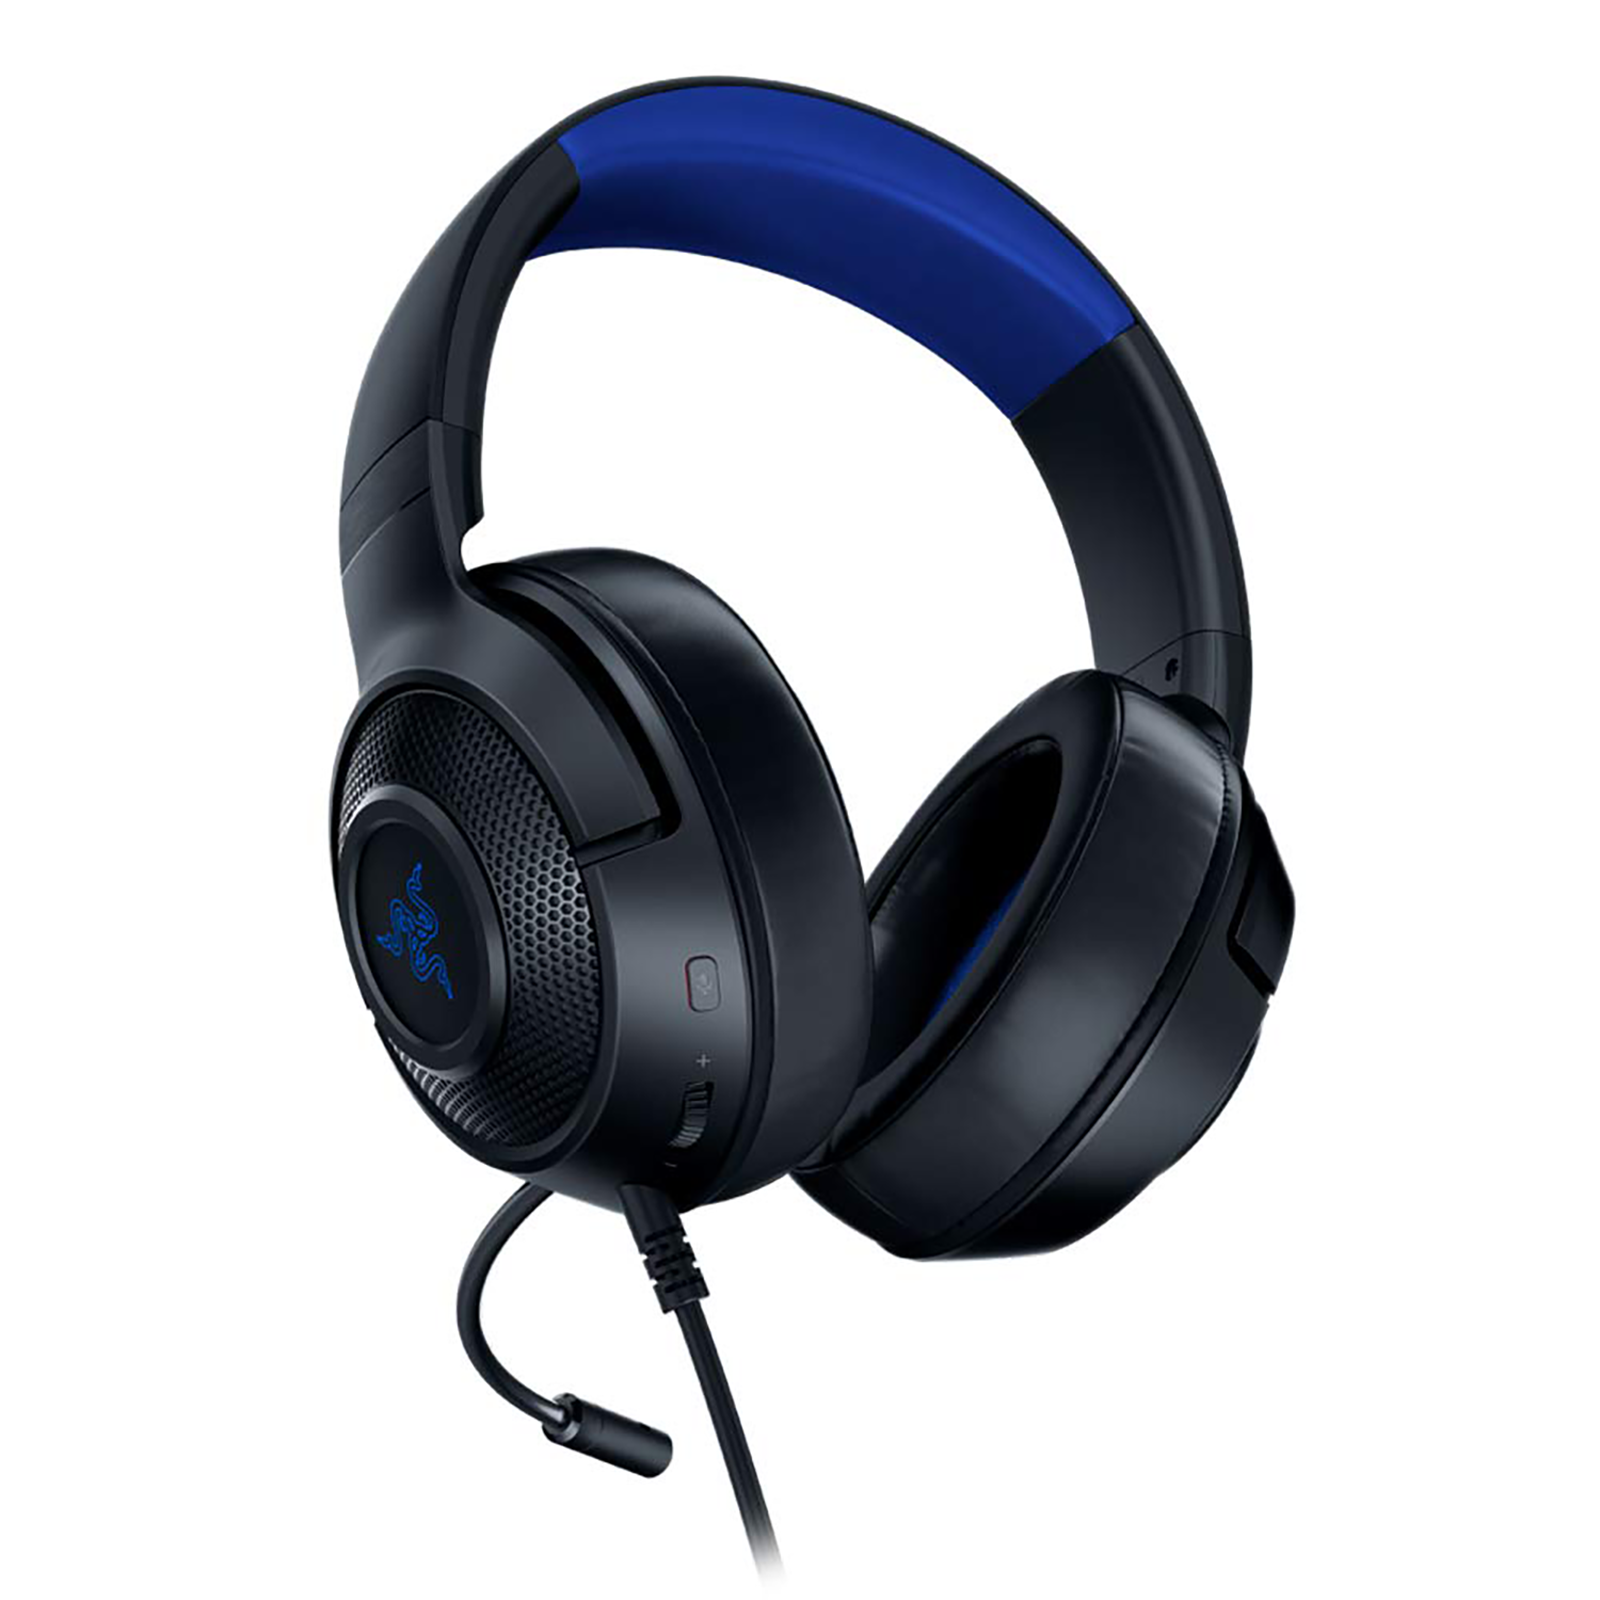 Razer Kraken X for Console Over-Ear Wired Gaming Headset with Mic (Crystal Clear Communication, RZ04-02890200-R3M1, Black)_1